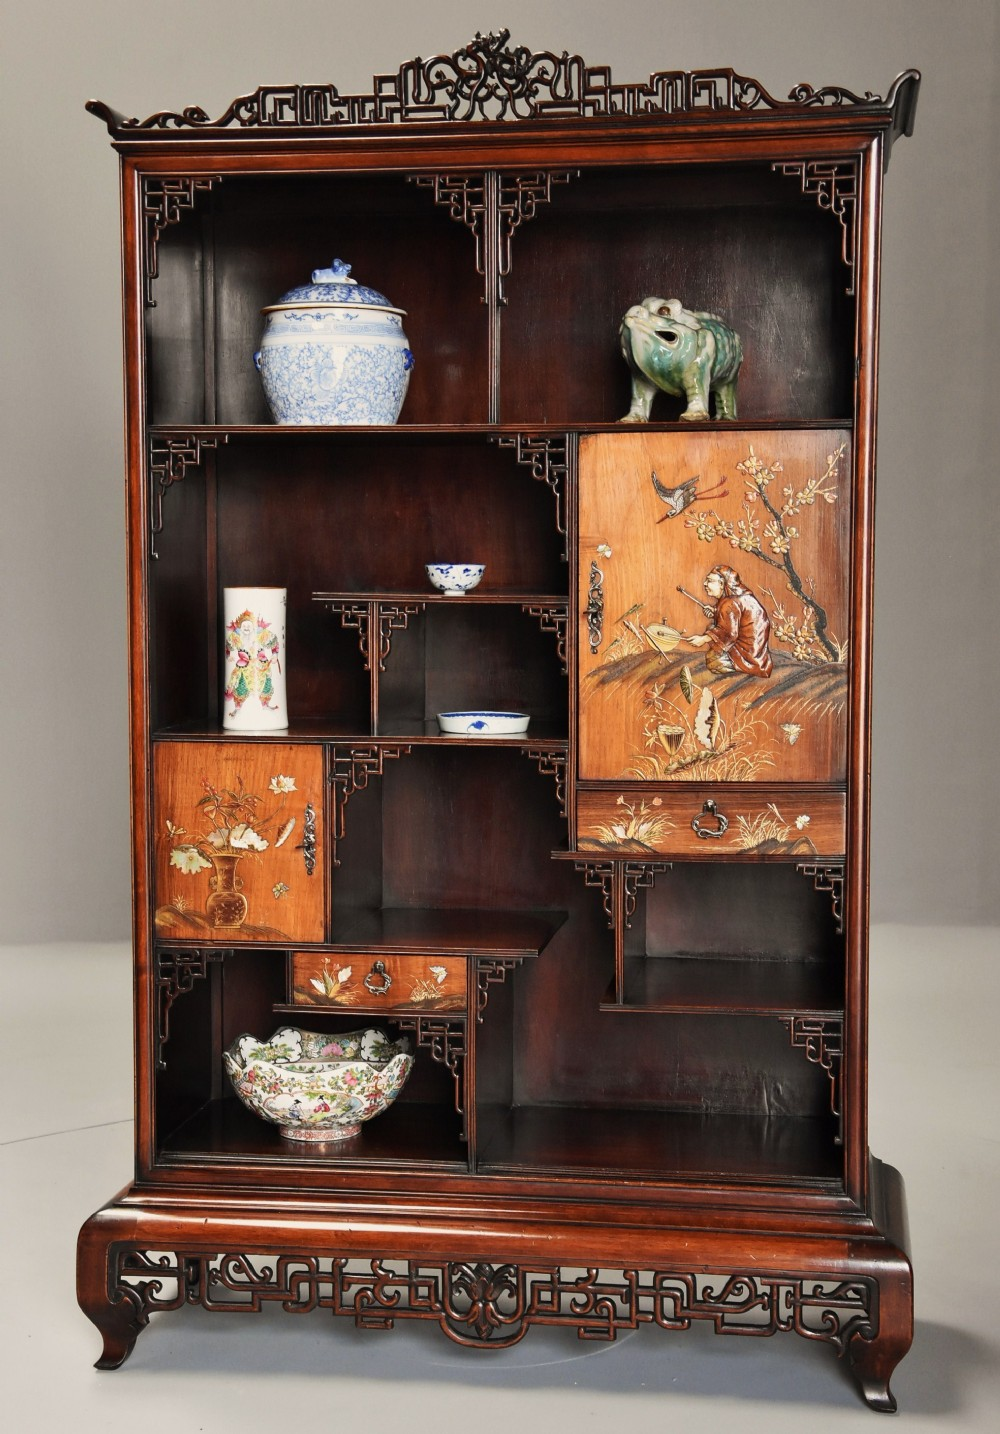 exquisite french 19thc japanese style rosewood display cabinet attributed to gabrielfrederic viardot